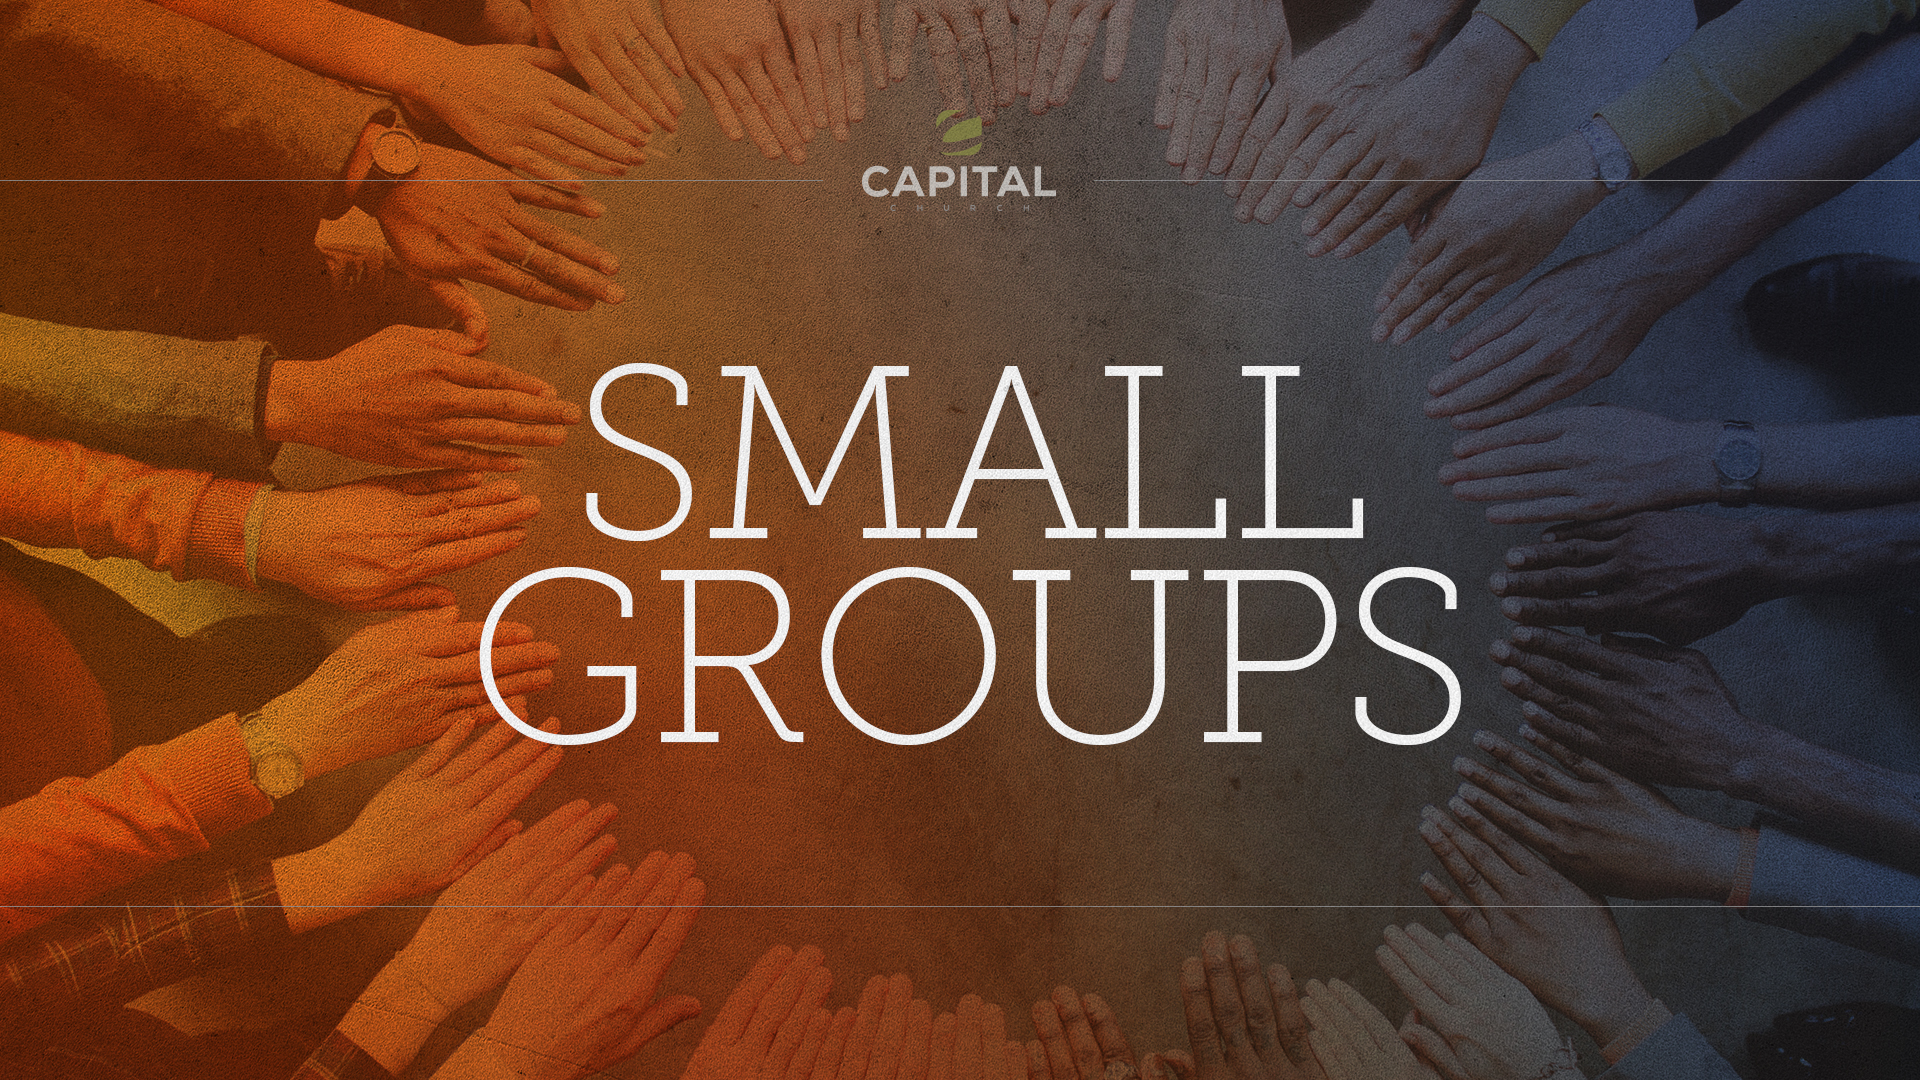 Small groups graphic